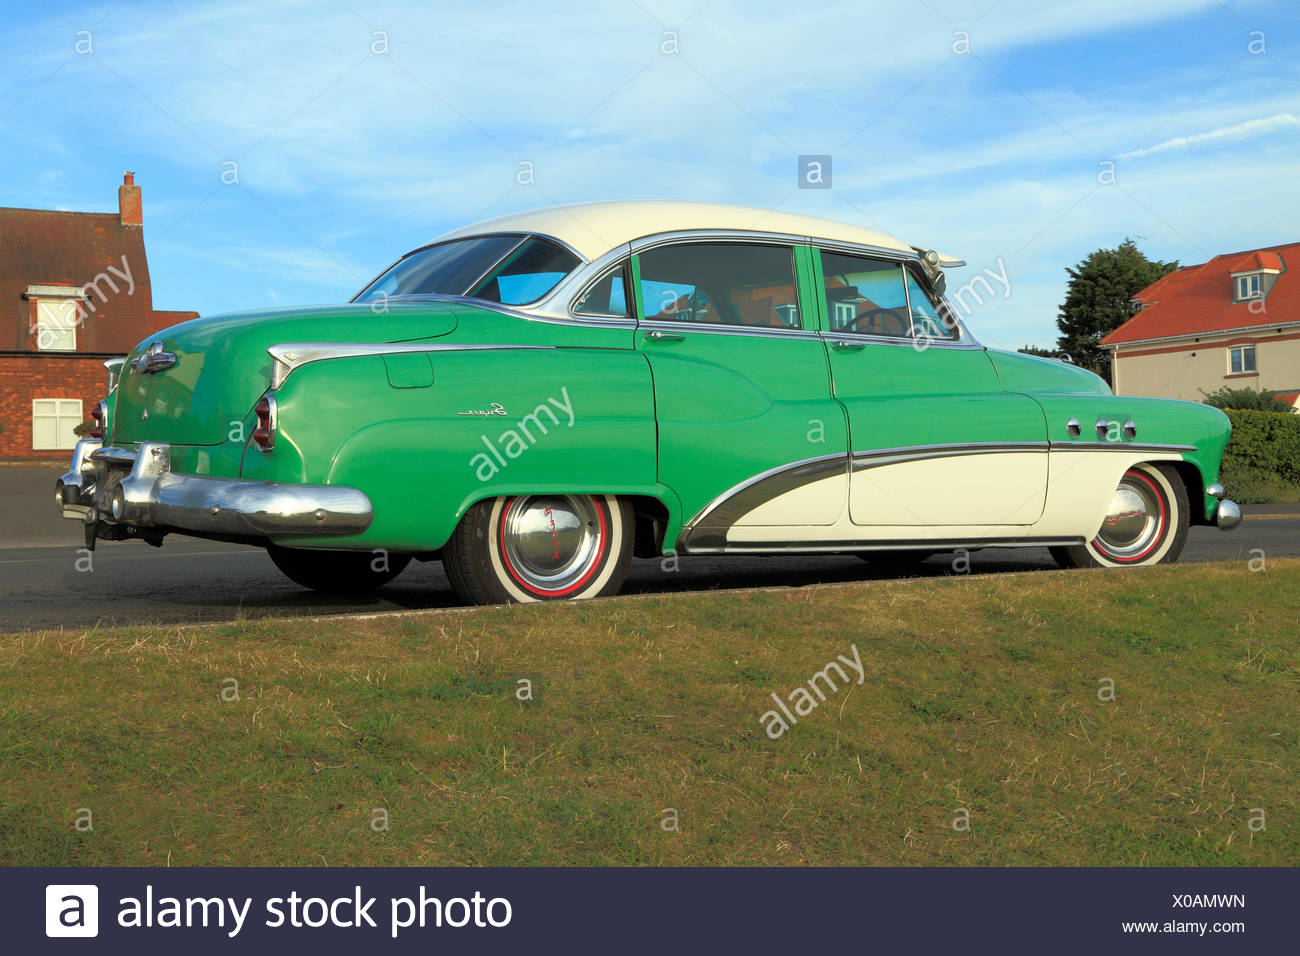 Buick Eight Super, iconic vintage U S A, American automobile, motorcar car saloon 1950s historic cars motorcars automobiles - Stock Image